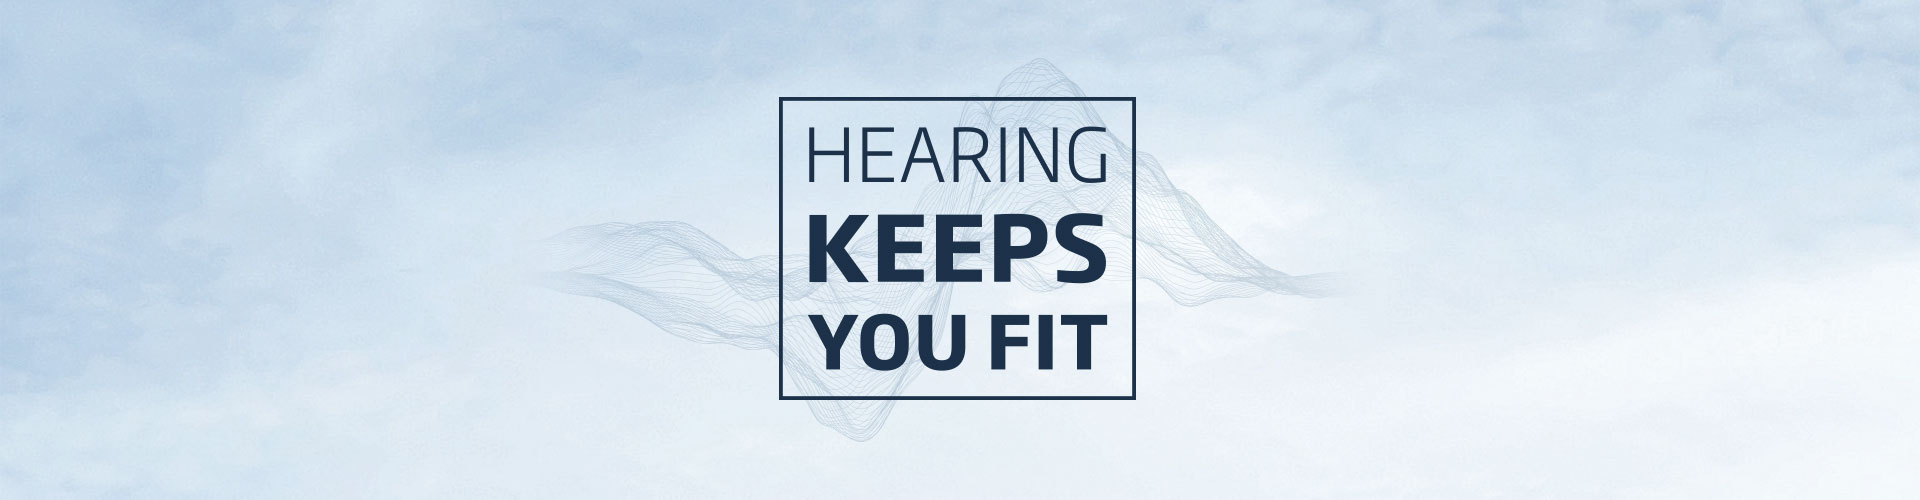 hearing-keeps-you-fit